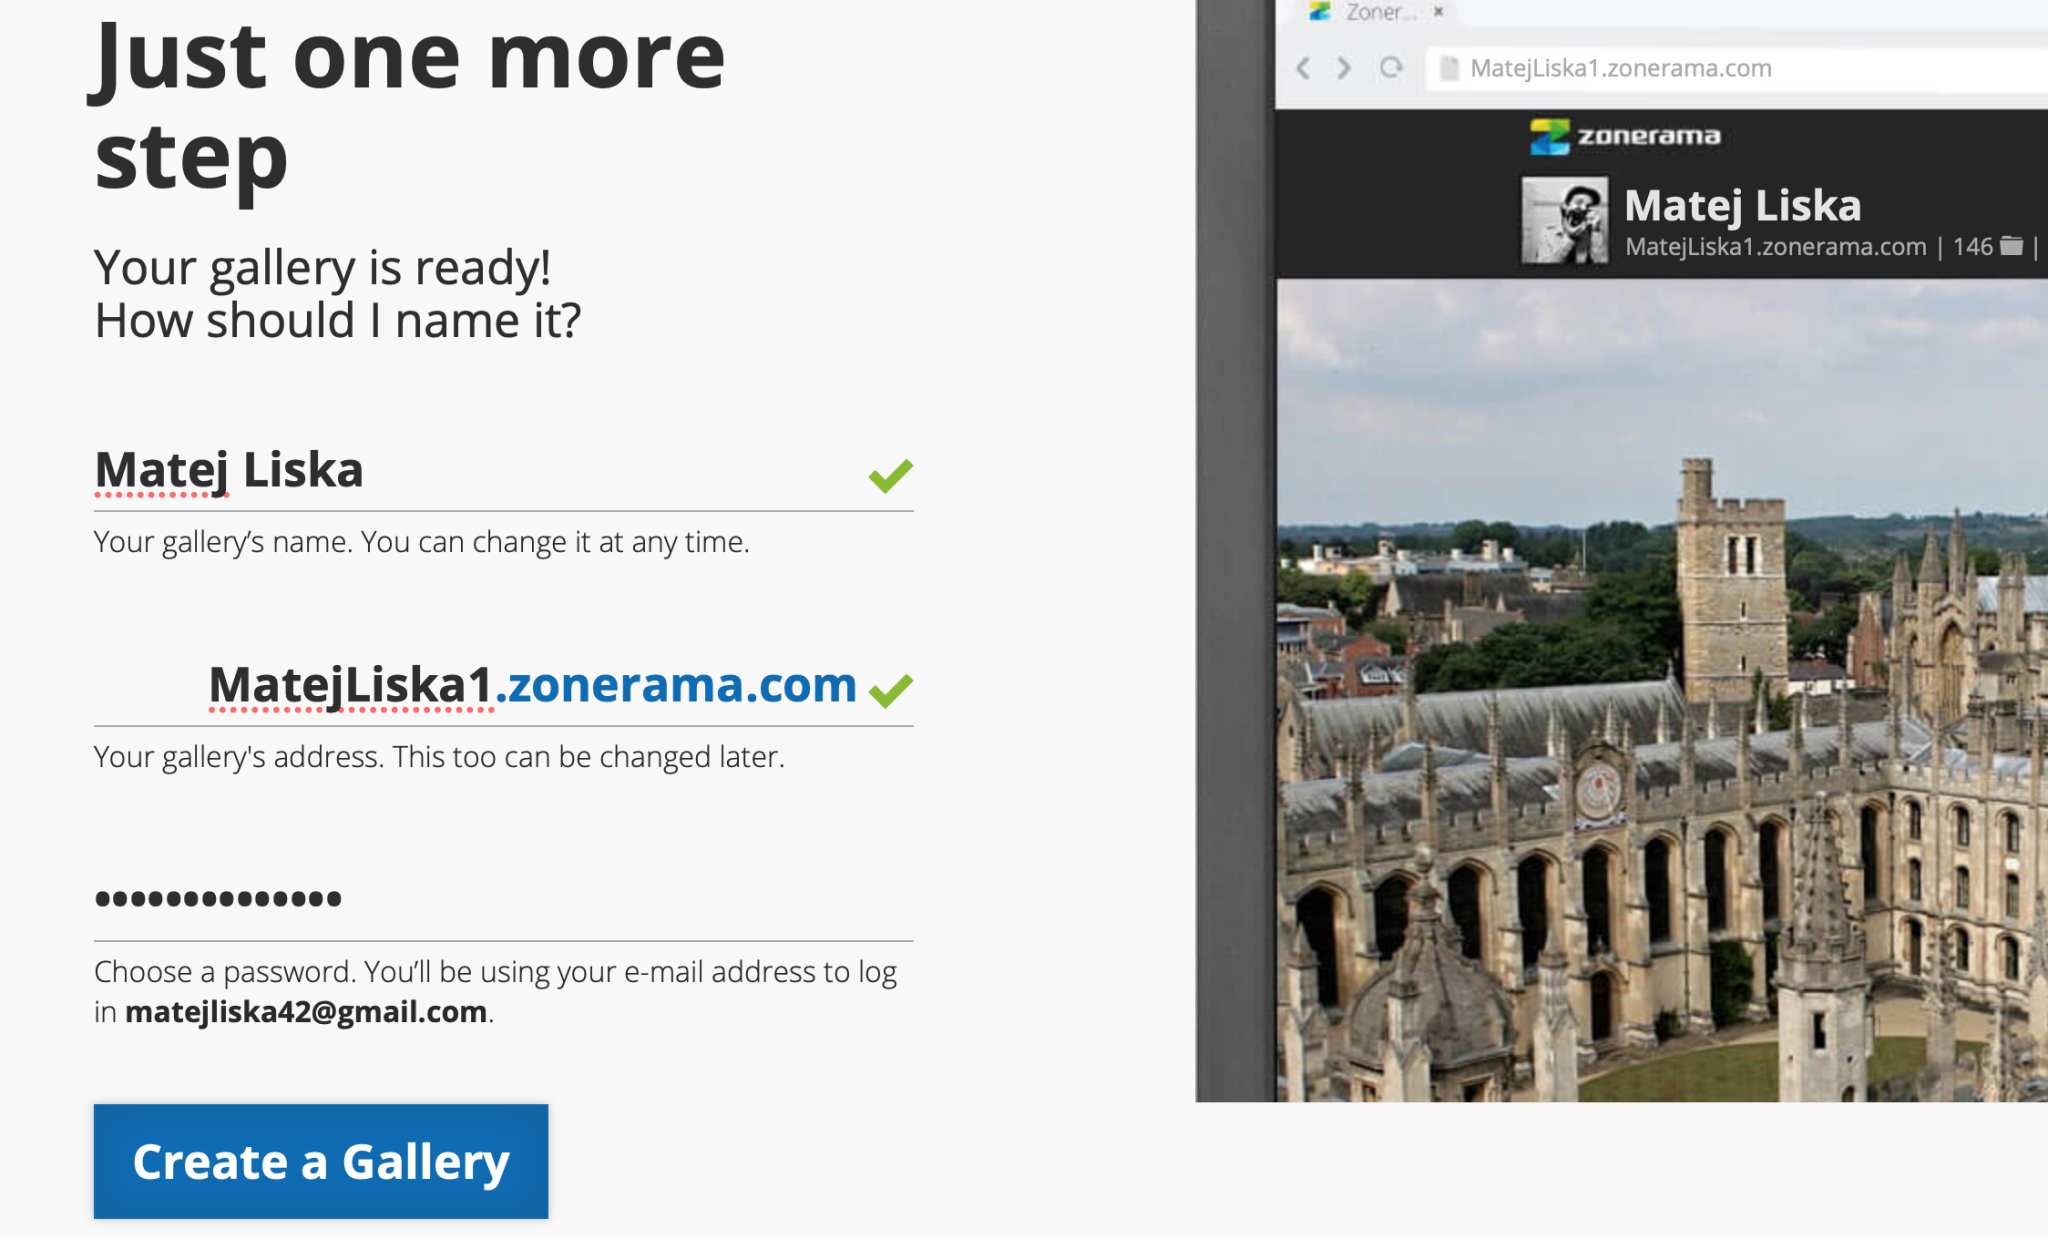 Zonerama Is Unlimited and Free. See How to Work With It and What It Can Do.